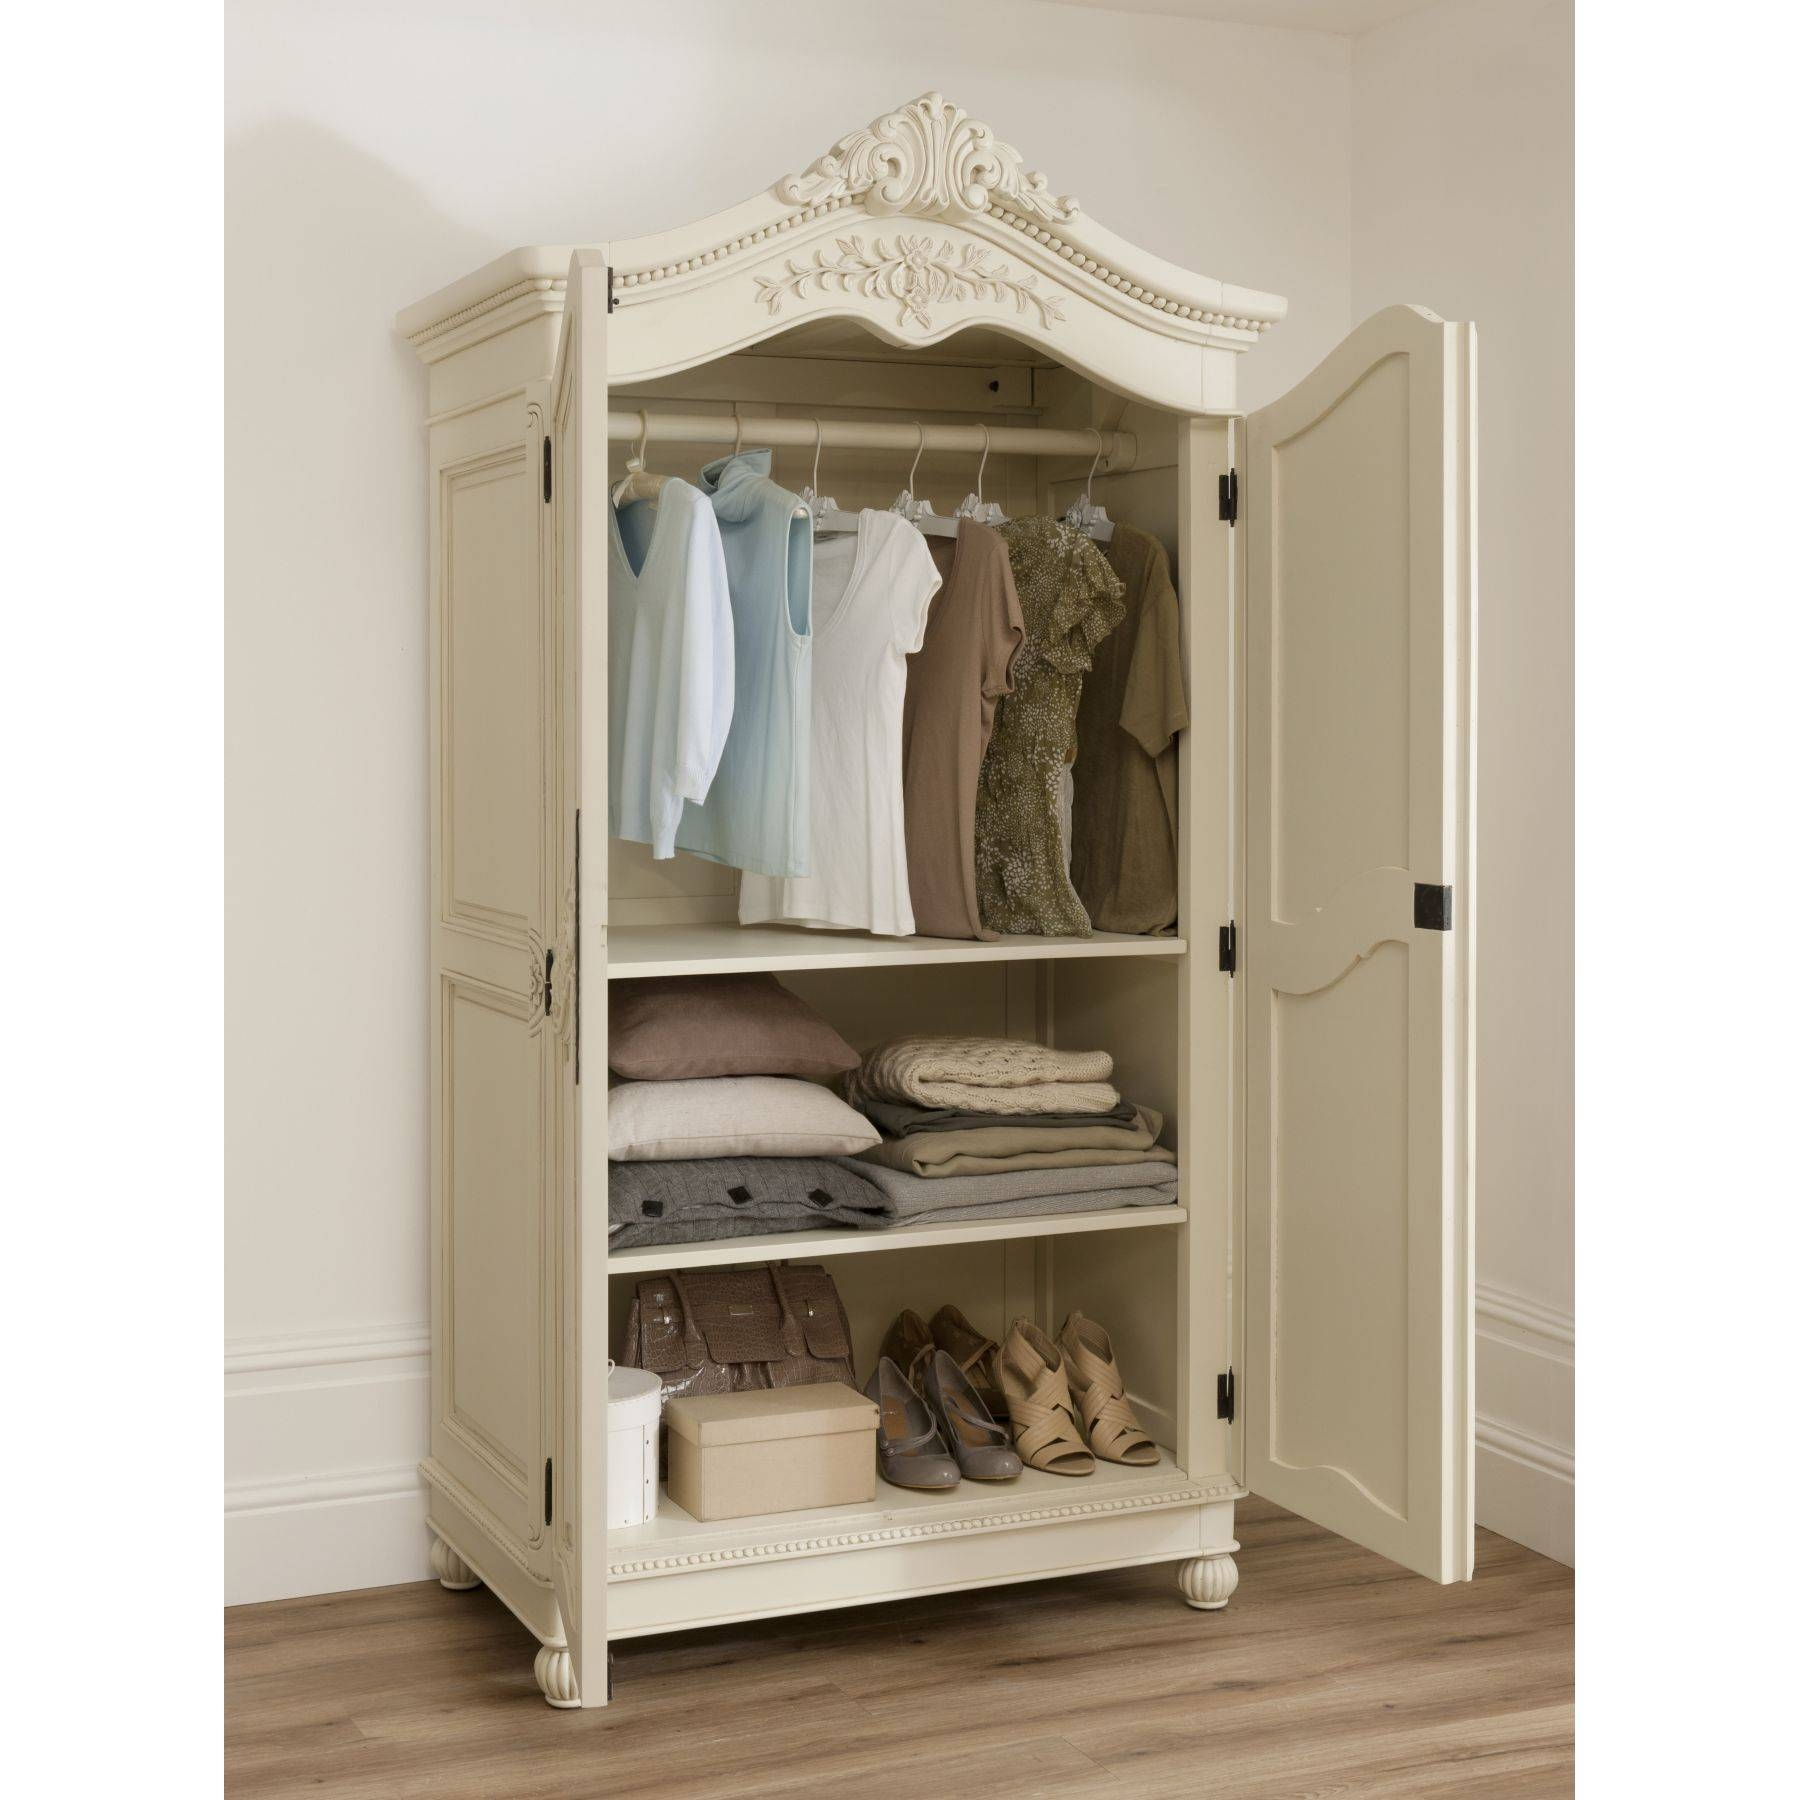 Shabby Chic Shelves For Sale Ireland: Smart Home 2015 Videos Hgtv regarding Shabby Chic Wardrobes For Sale (Image 13 of 15)